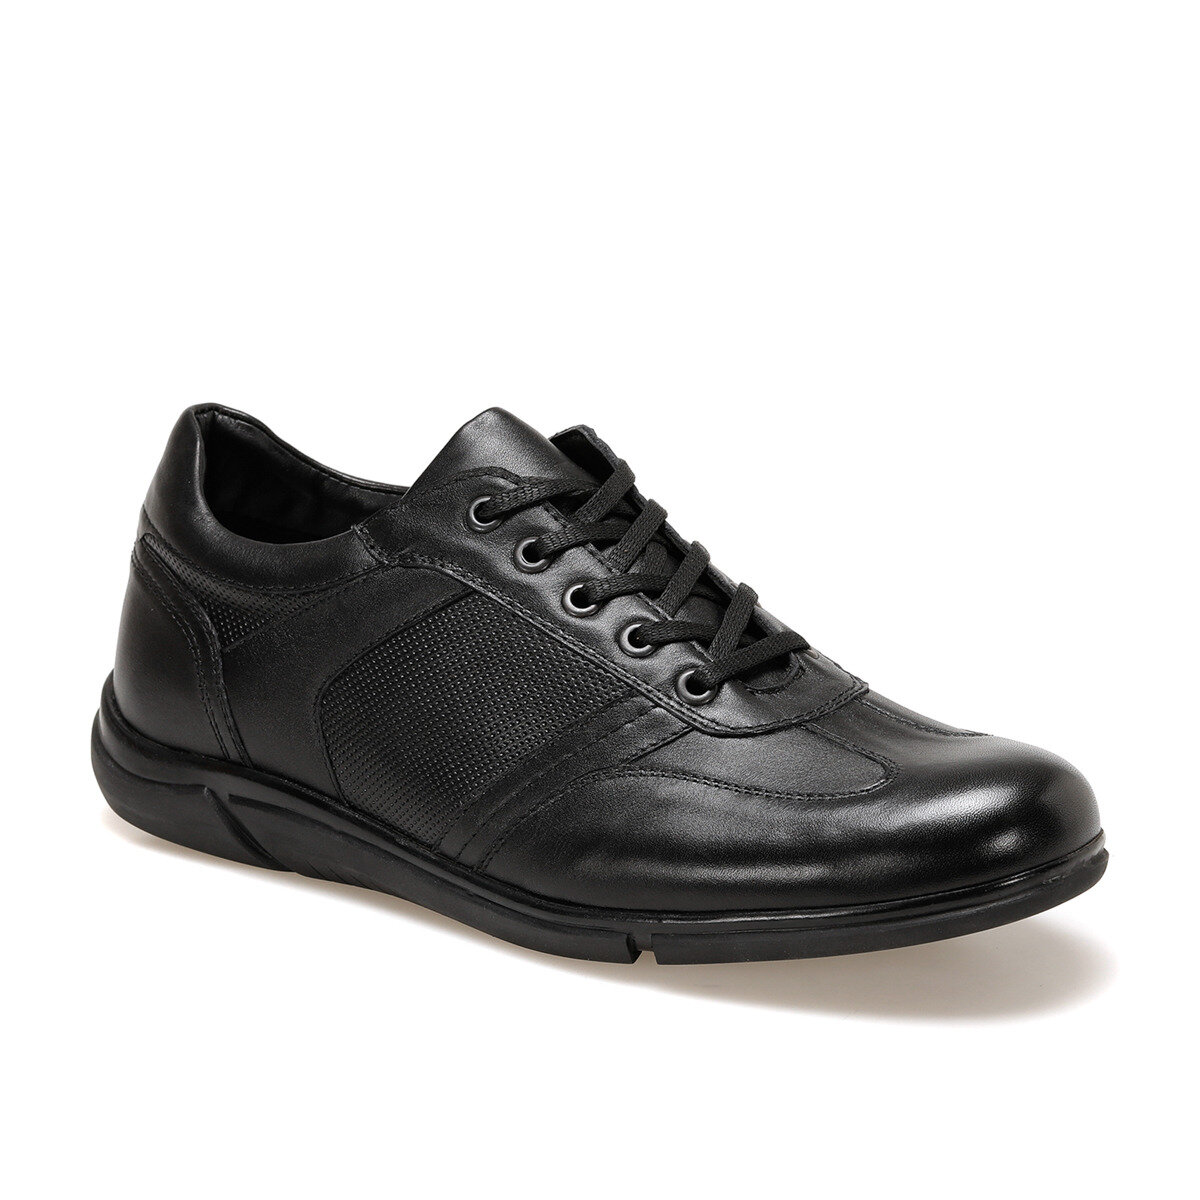 FLO GBS11 Black Men Casual Shoes Oxide